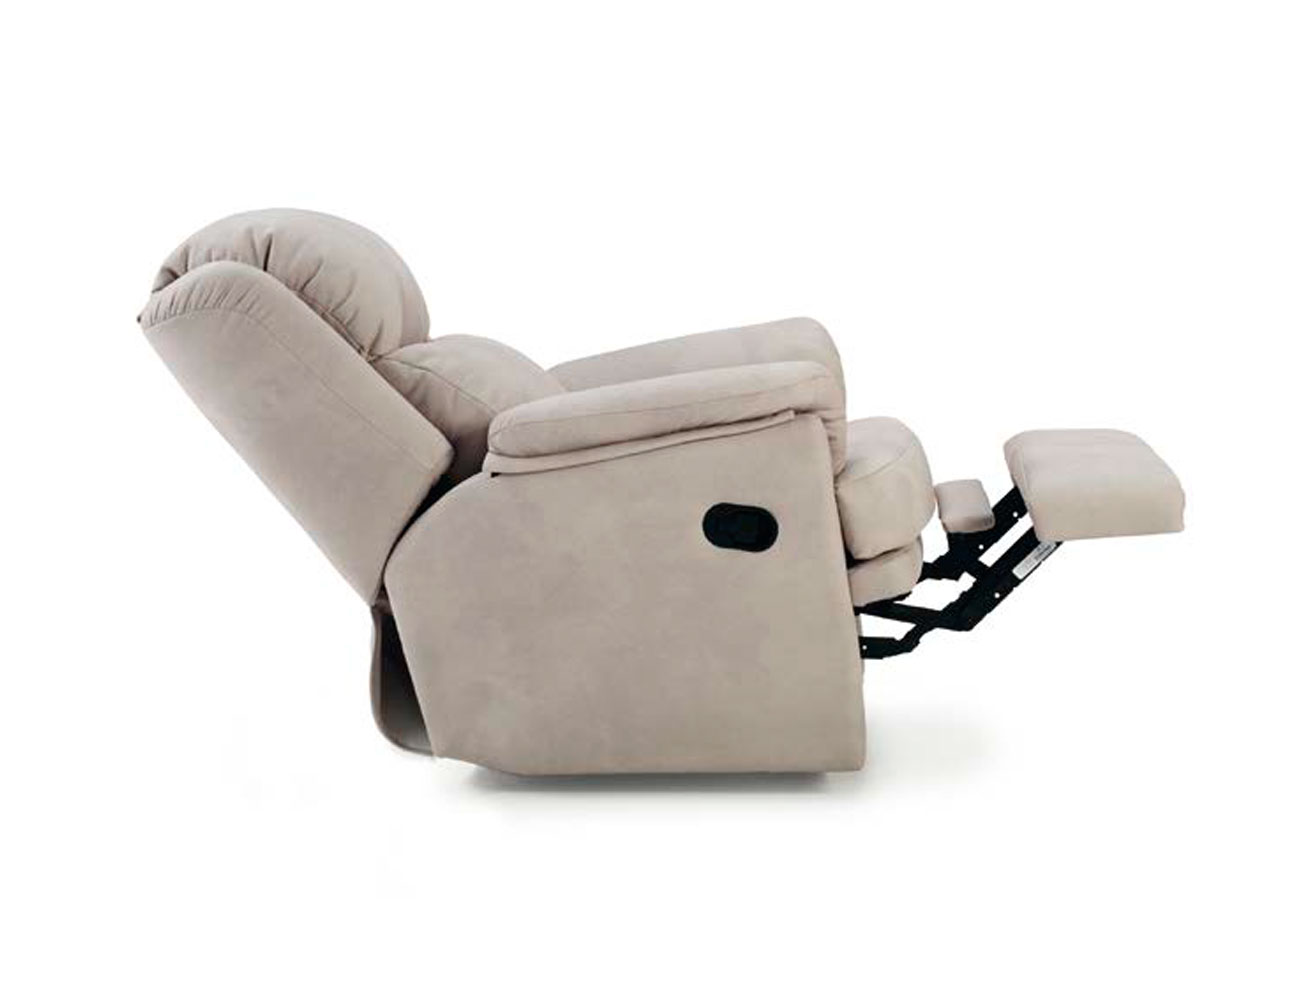 Sillon relax manual palanca esther 114